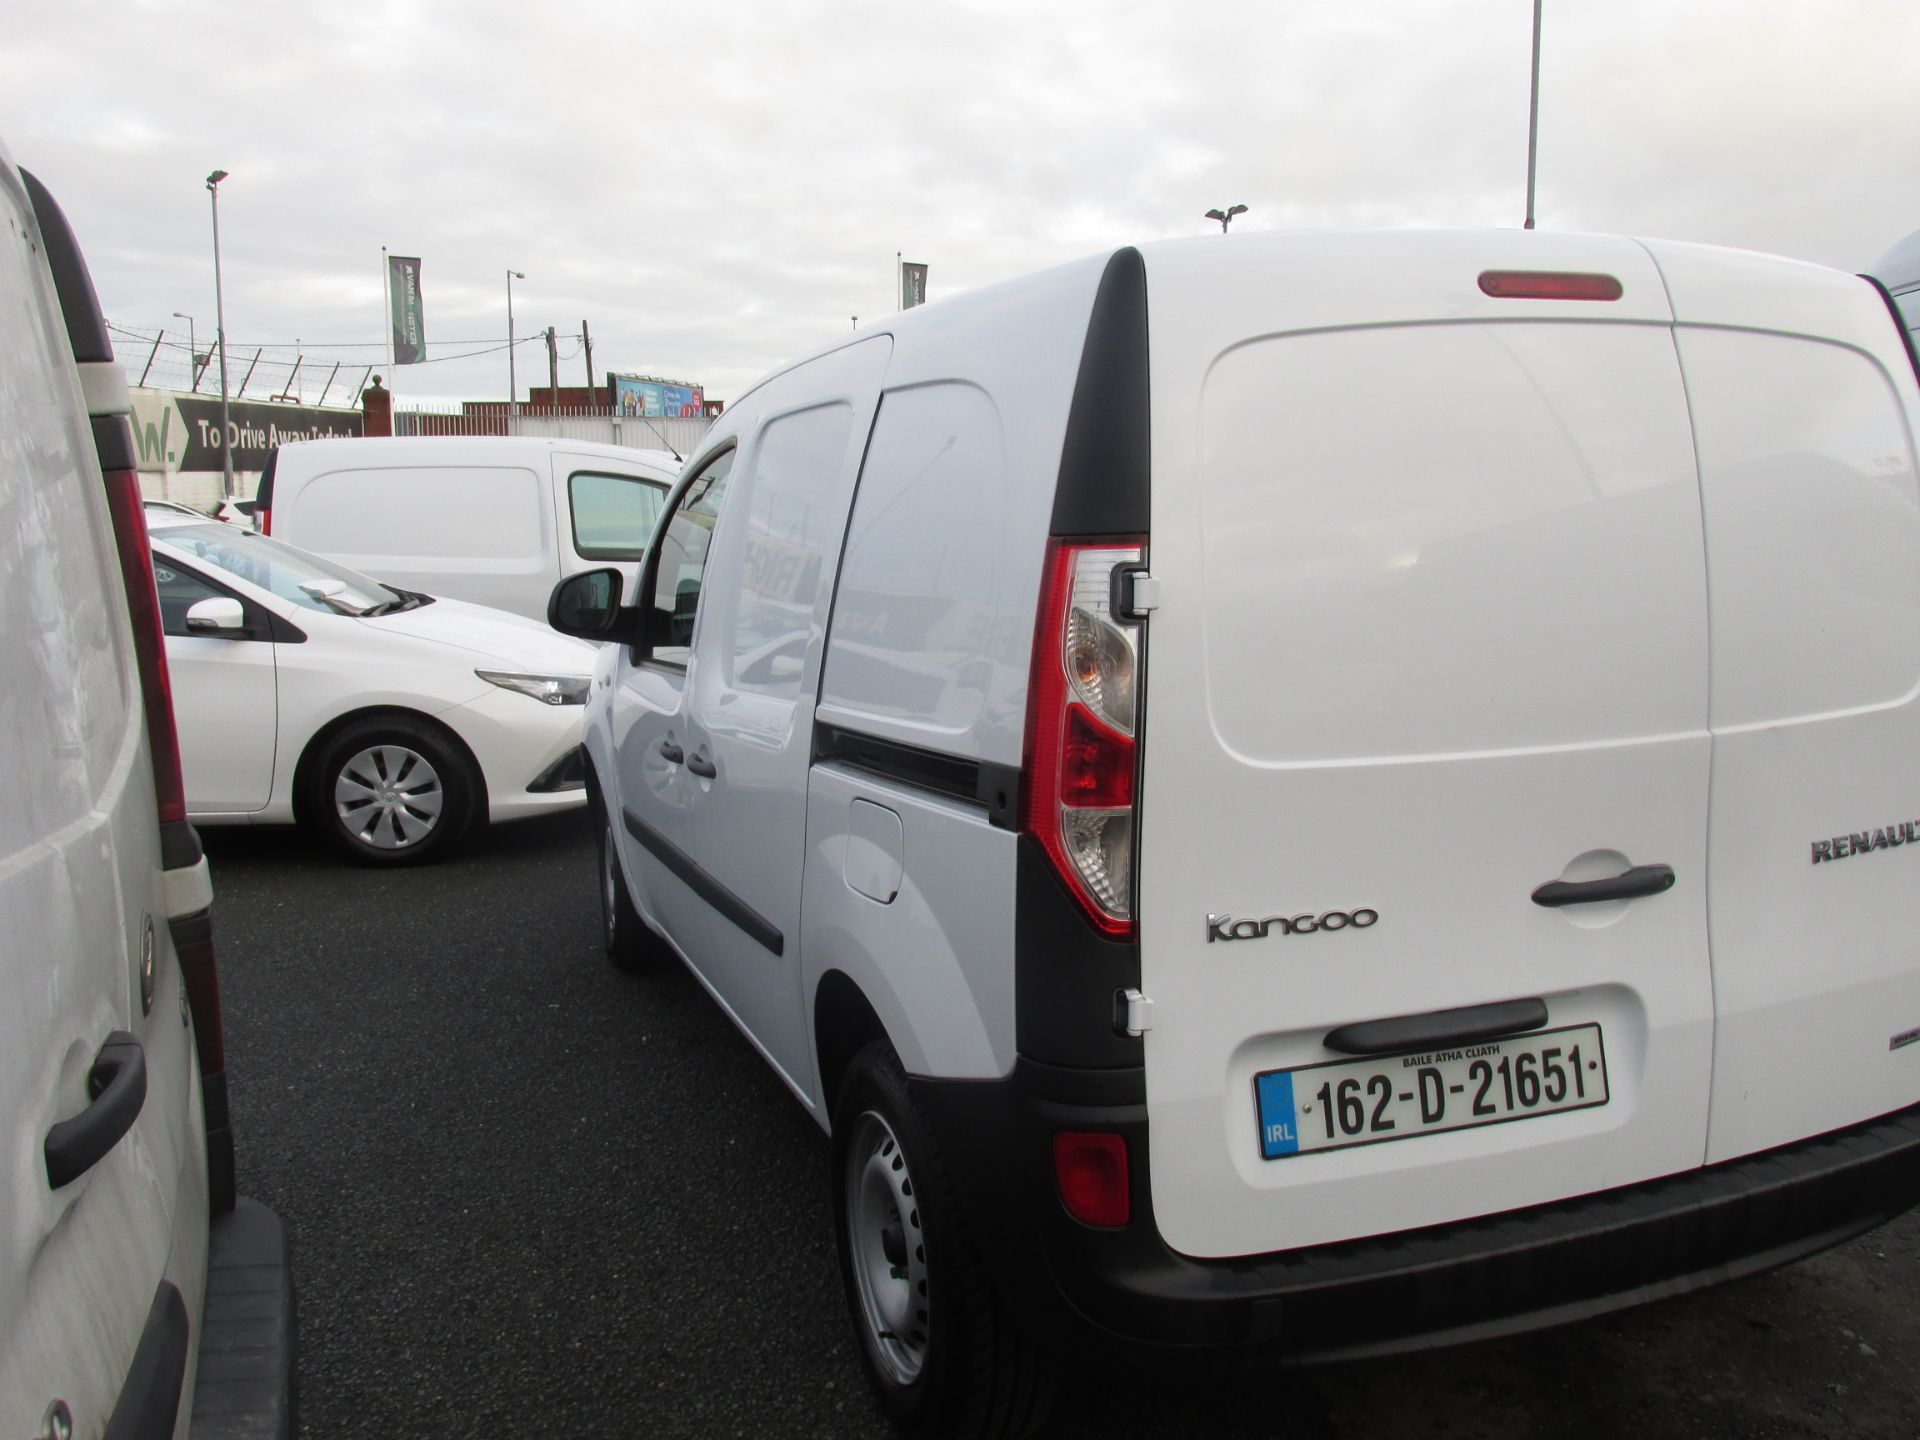 2016 Renault Kangoo ML19 Energy DCI 75 Business 2D - 100 VANS TO VIEW IN VM SANTRY DUBLIN - (162D21651) Image 5